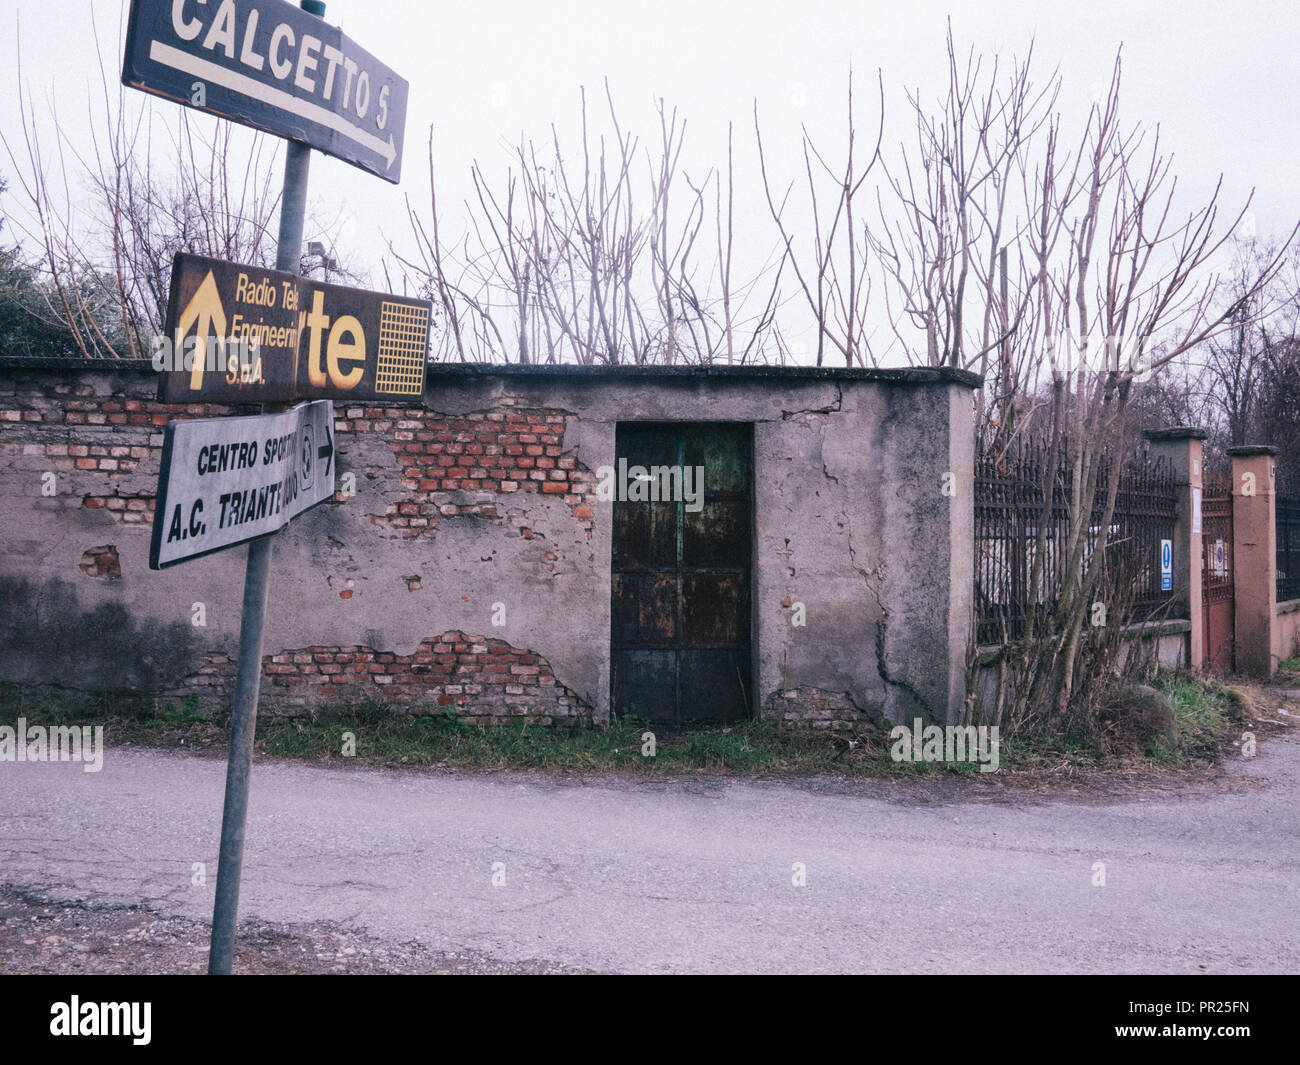 A dull-looking crossroad with old worn-out street signs. Looks very abandoned to itself and sad. Almost post apocalyptic. Wall fence and gate - Stock Image